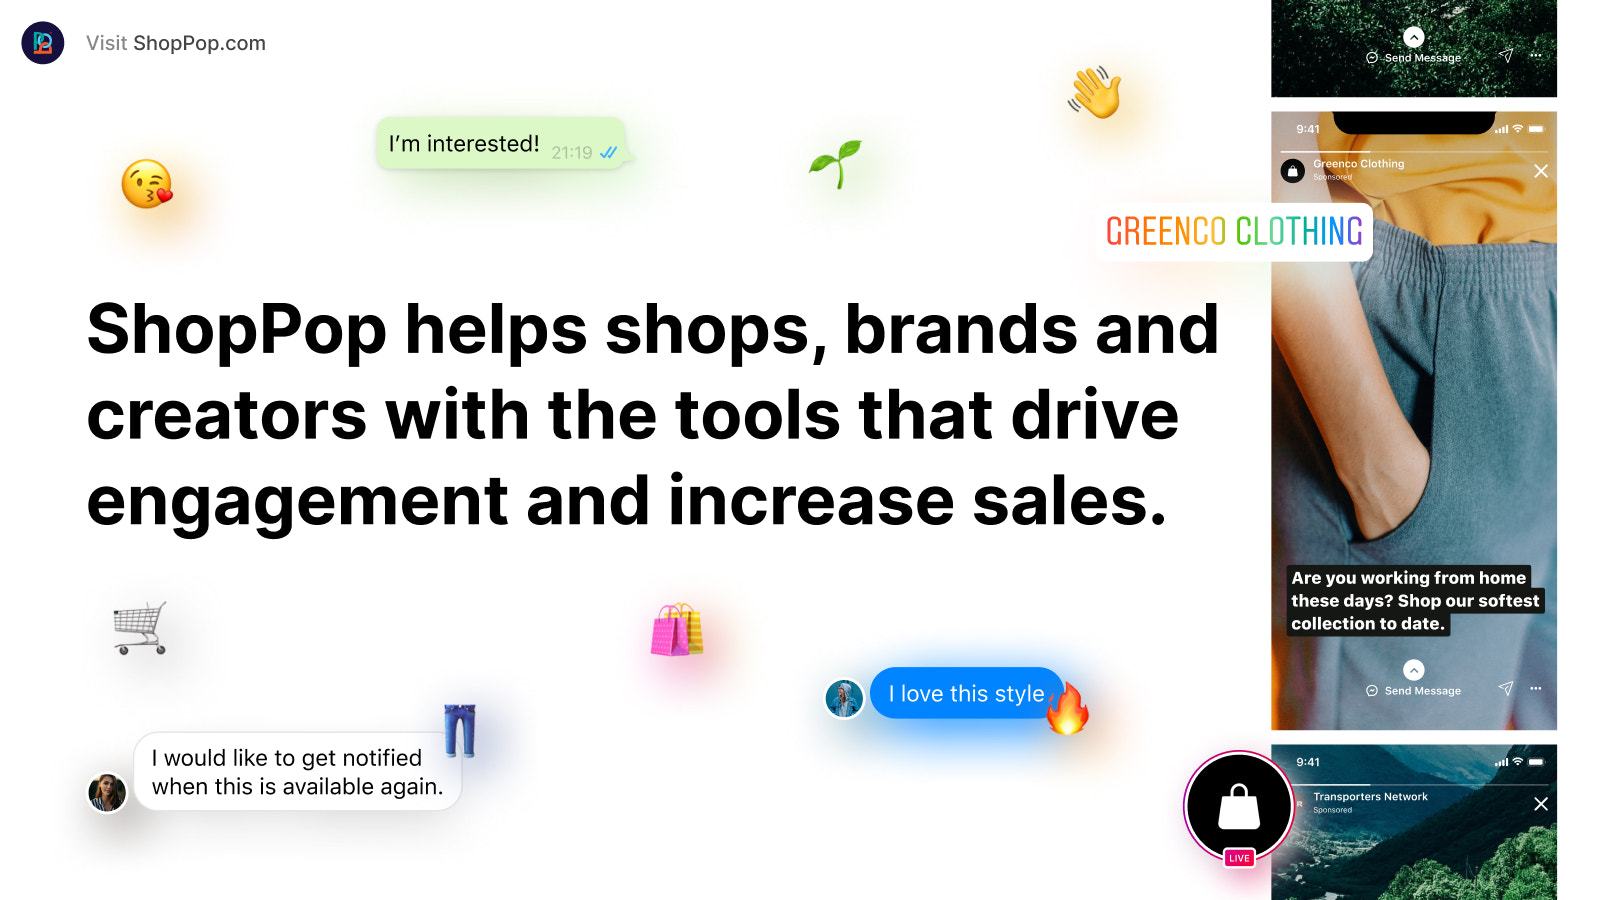 ShopPop helps shops with the tools that increase sales.